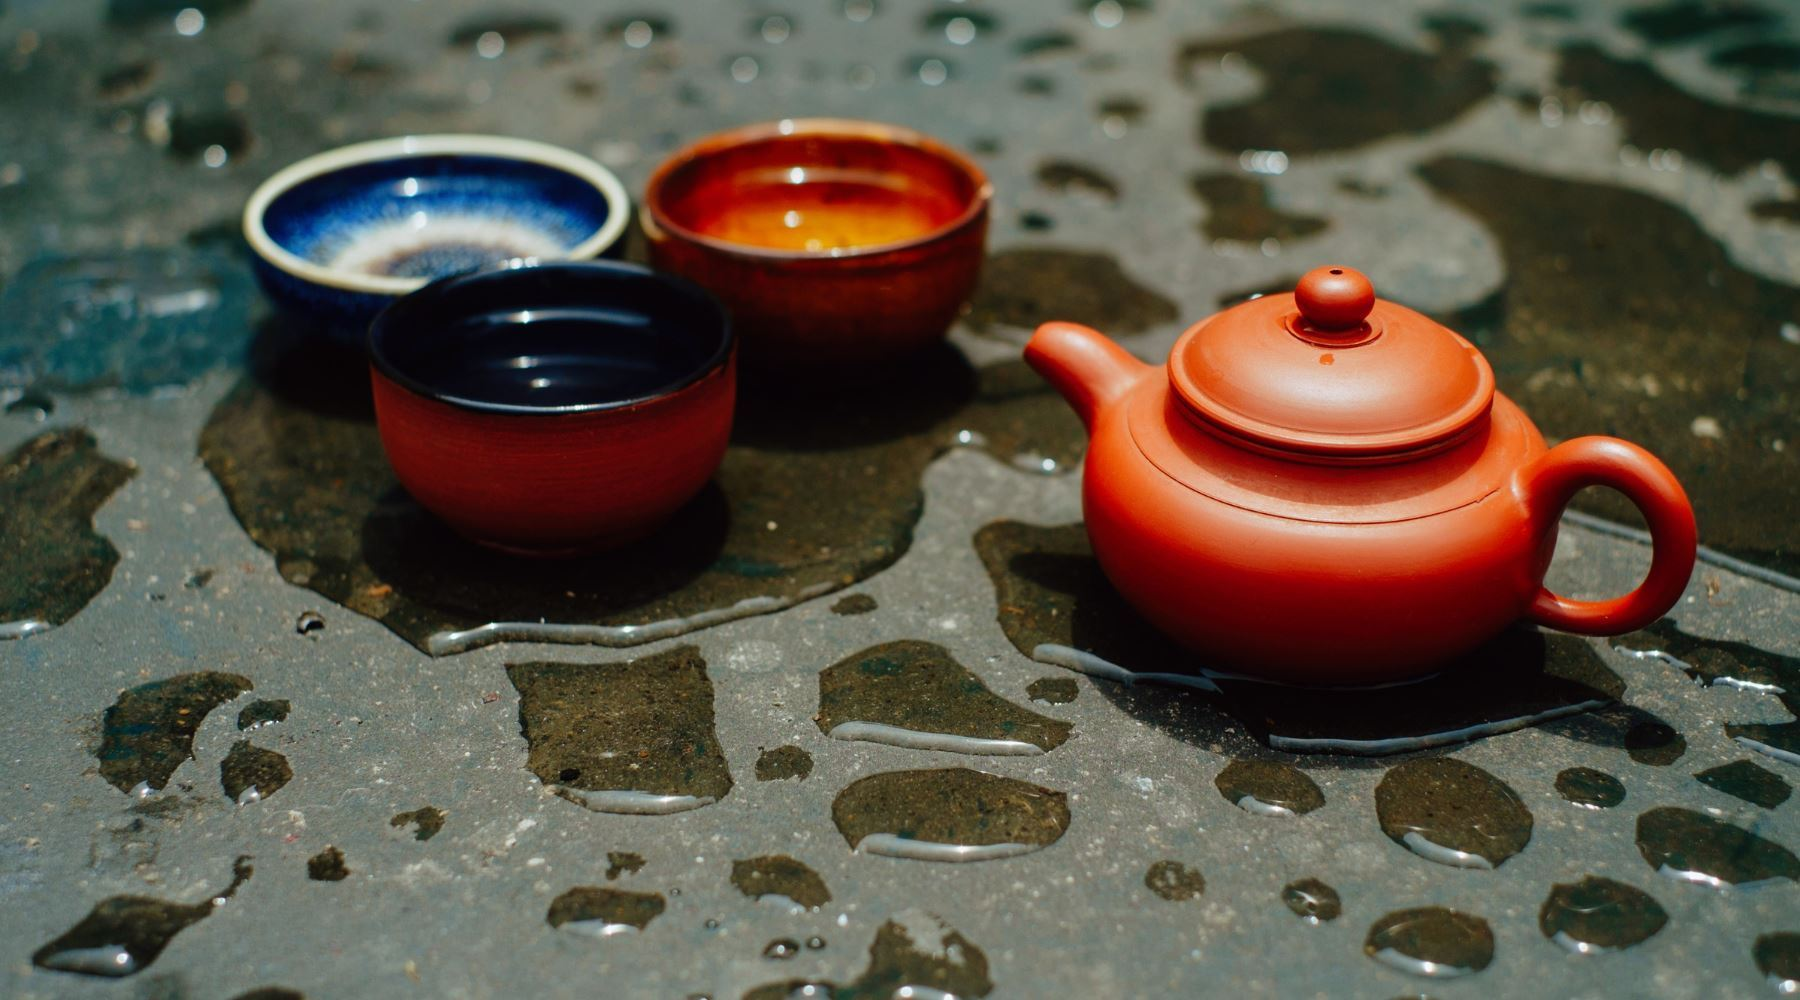 Why Chinese Teapots Are So Small?